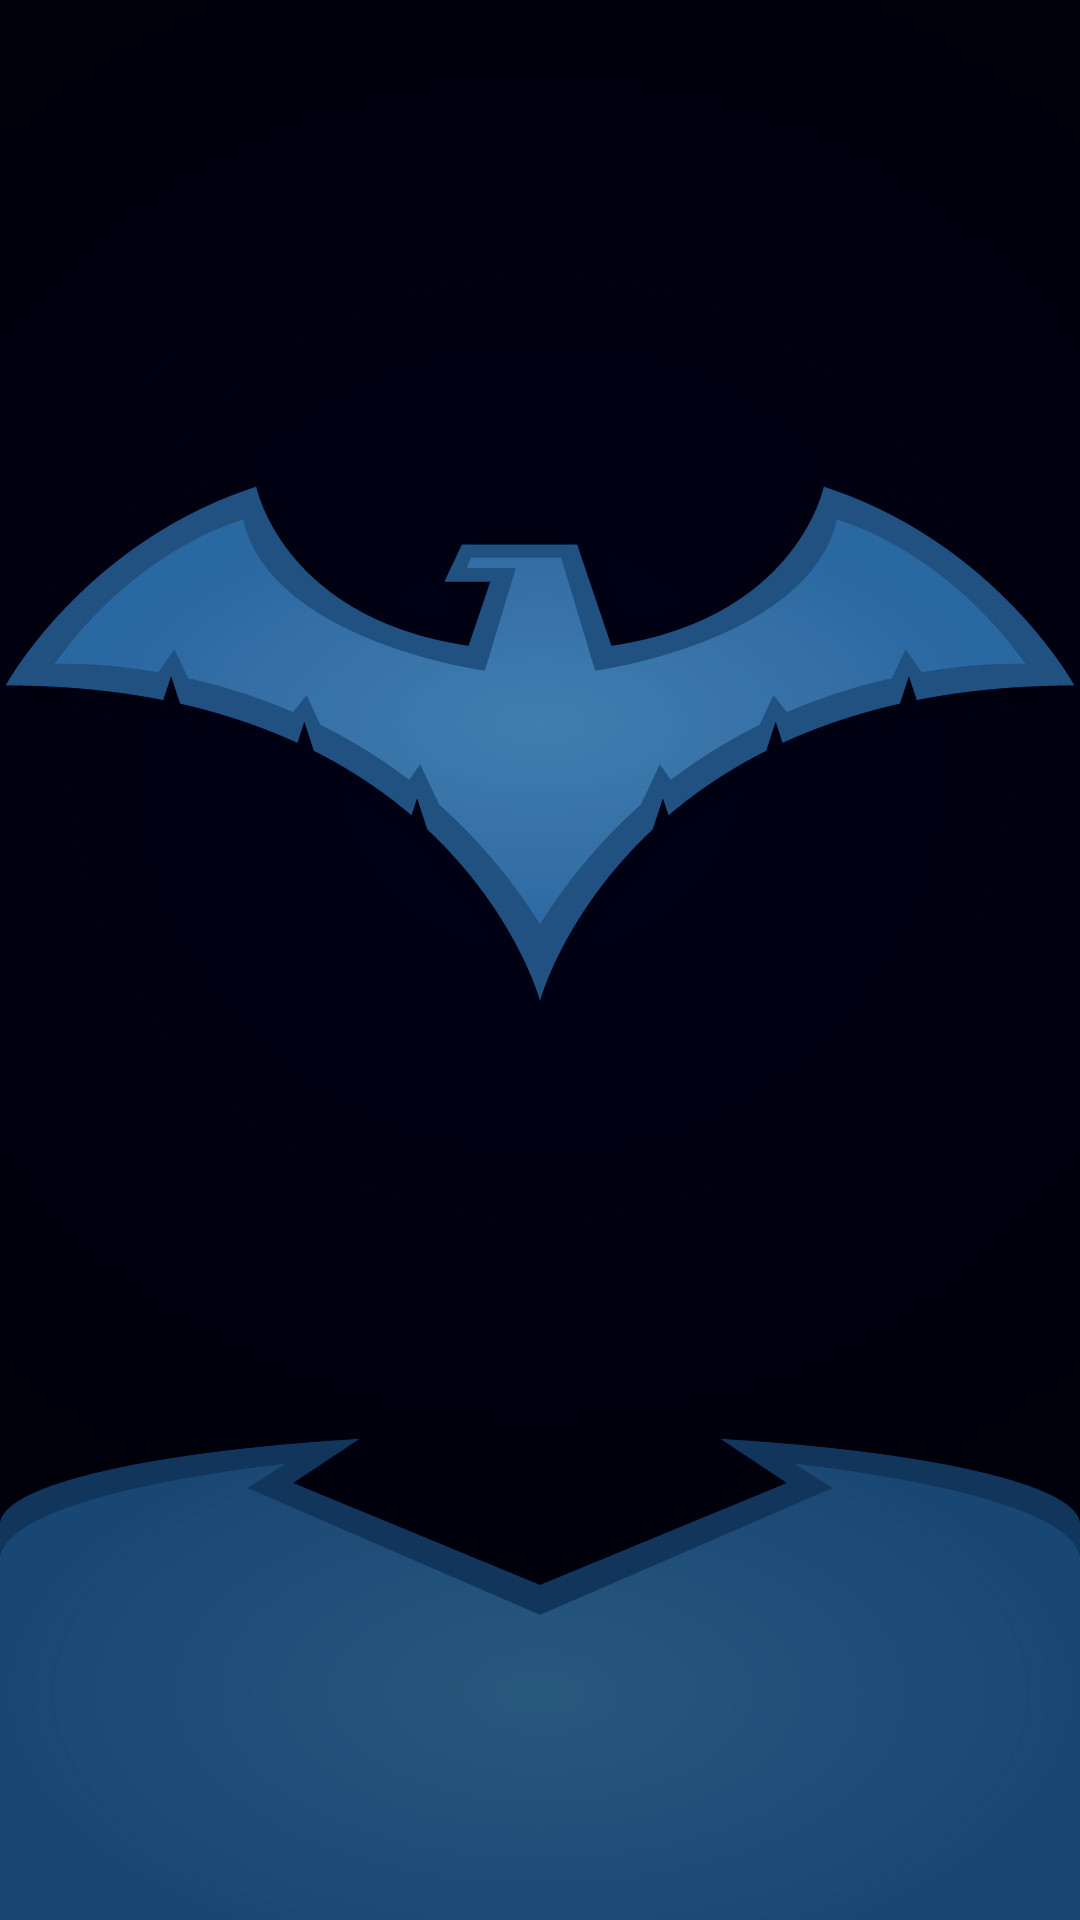 Nightwing logo wallpaper 79 images 3840x2042 buycottarizona Choice Image